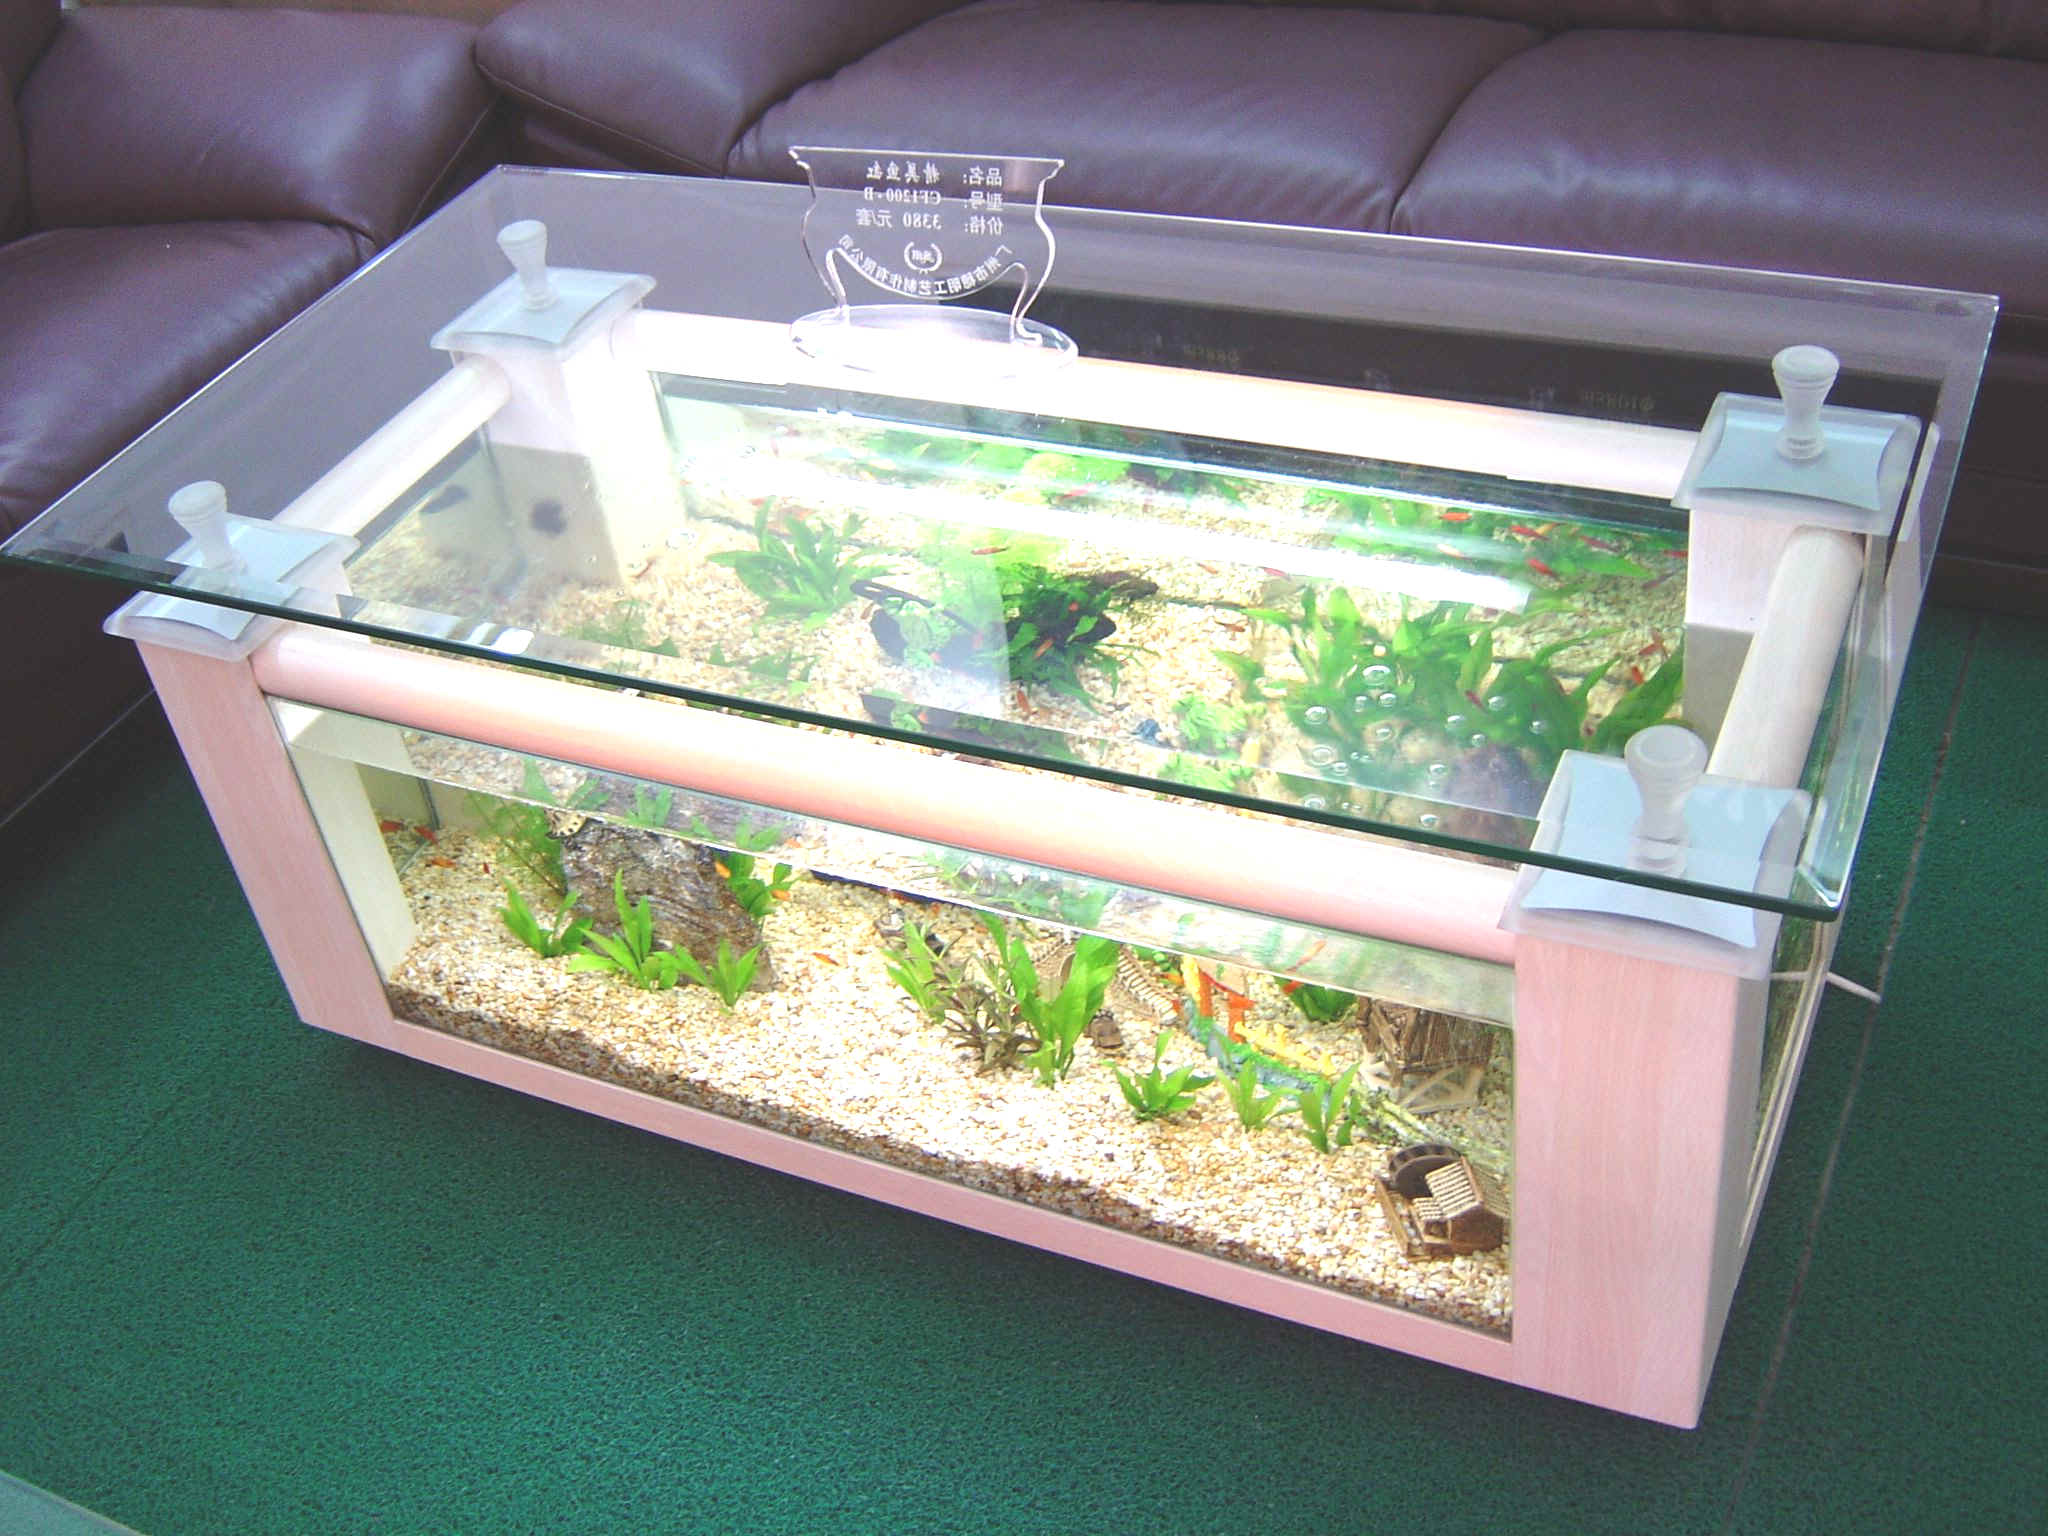 Coffee table aquarium for sale roy home design for Tropical fish tanks for sale